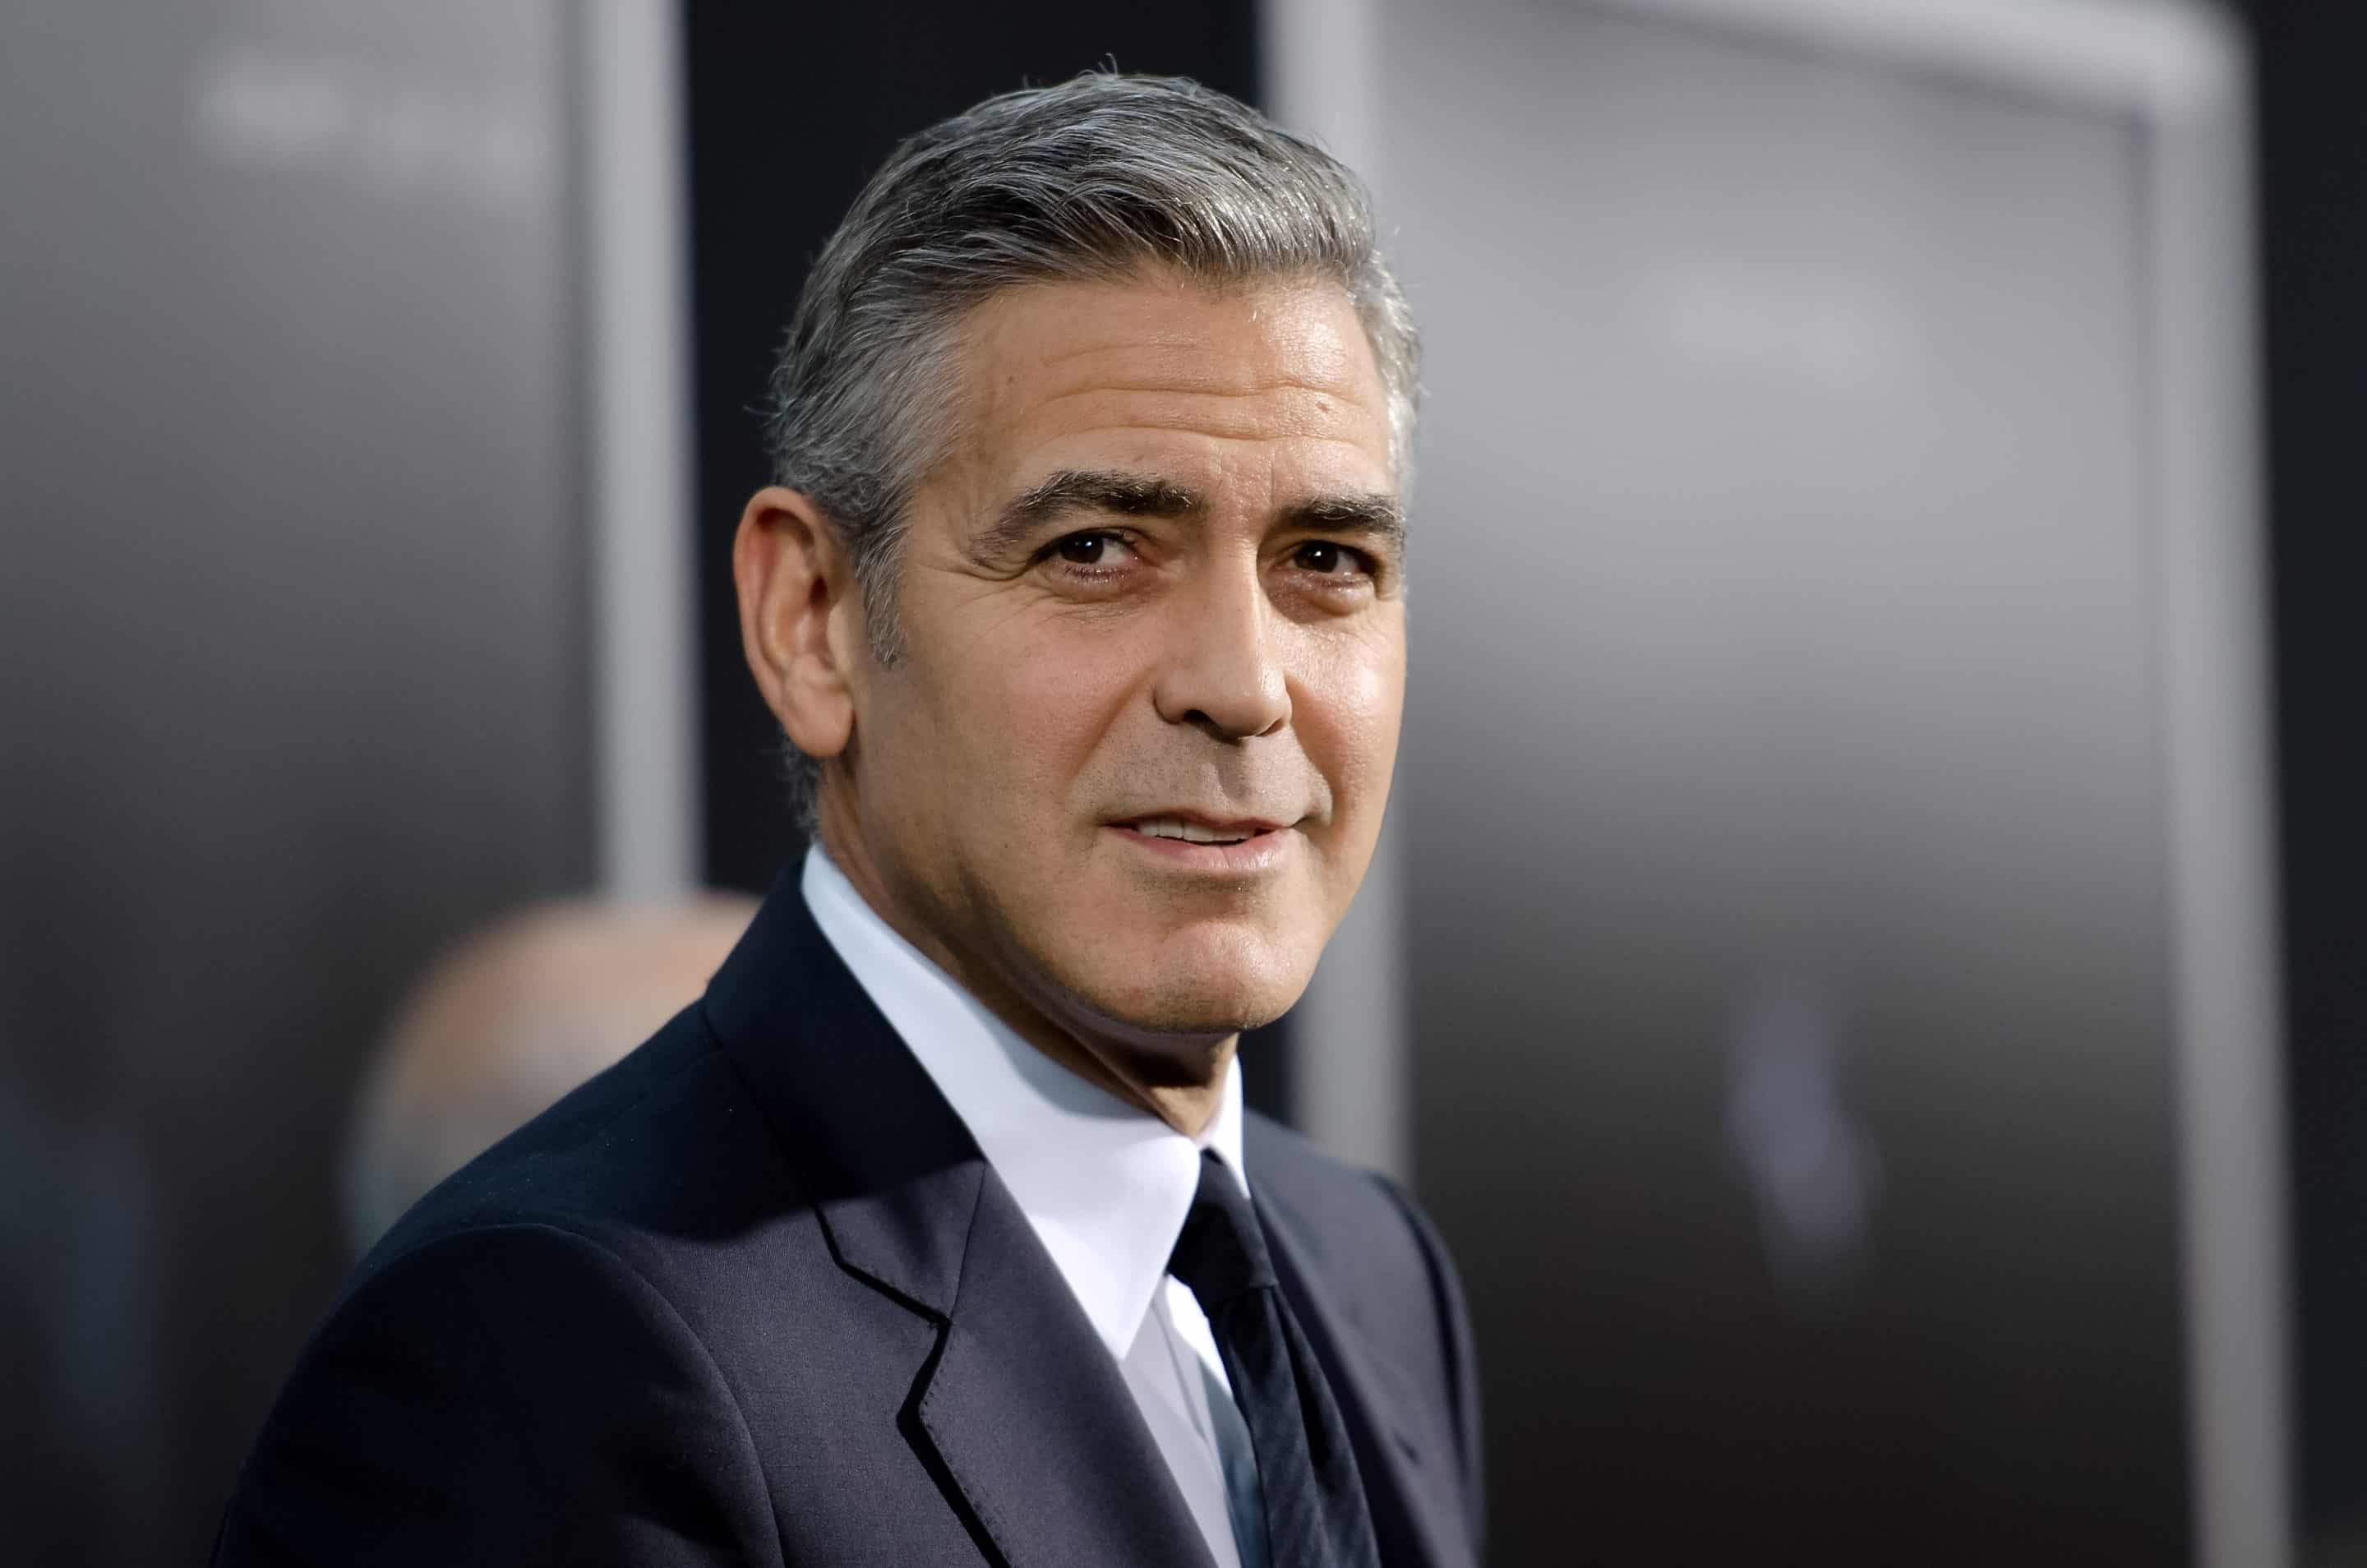 The George Clooney Rule of Sales Success | The Sales Experts ...